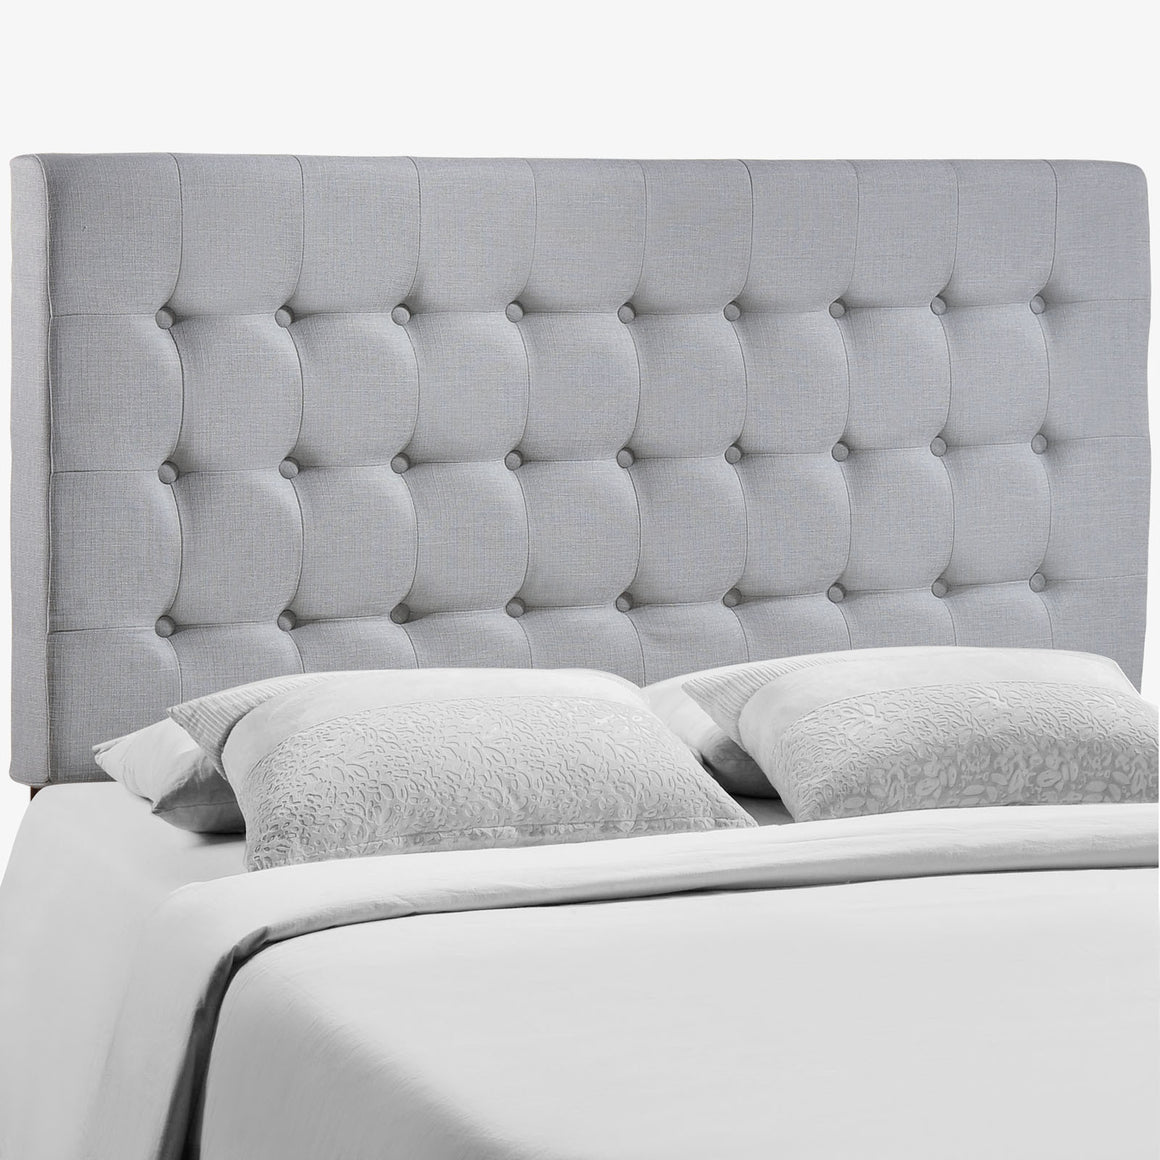 Tinble Queen Headboard